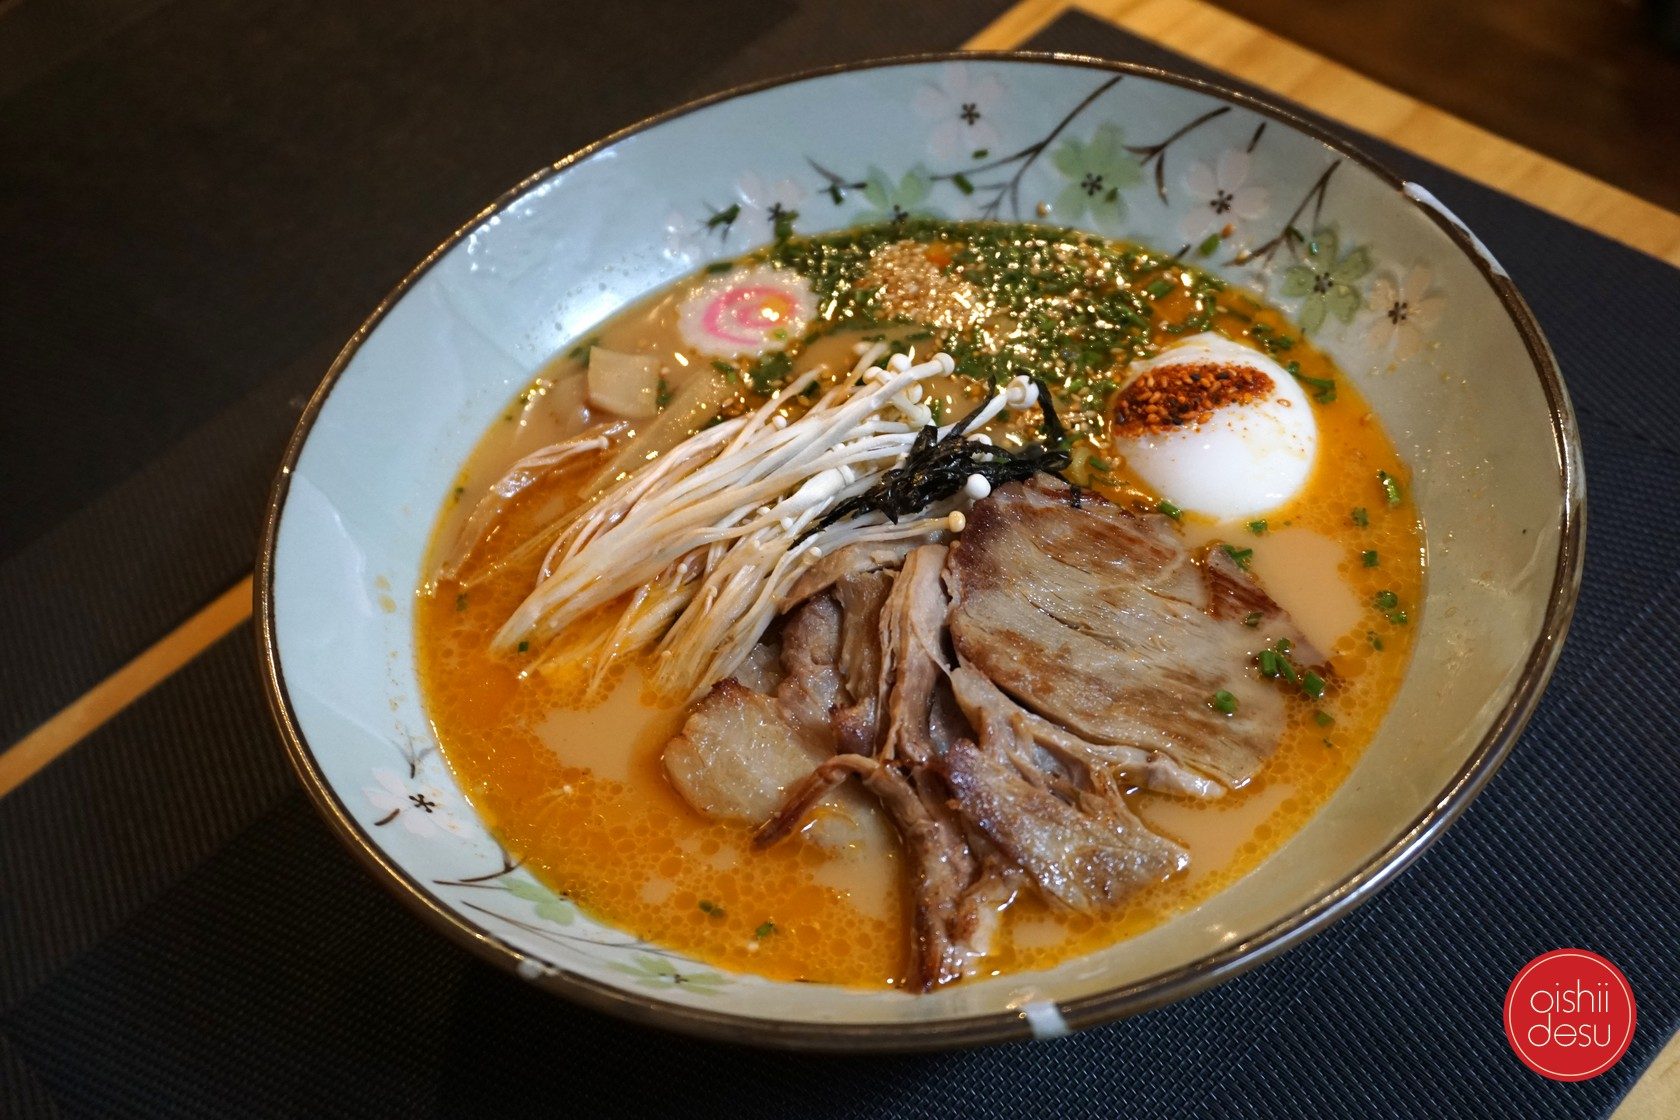 Seras tonkotsu ramen with enoki, chives, chashu, naruto, and seaweed